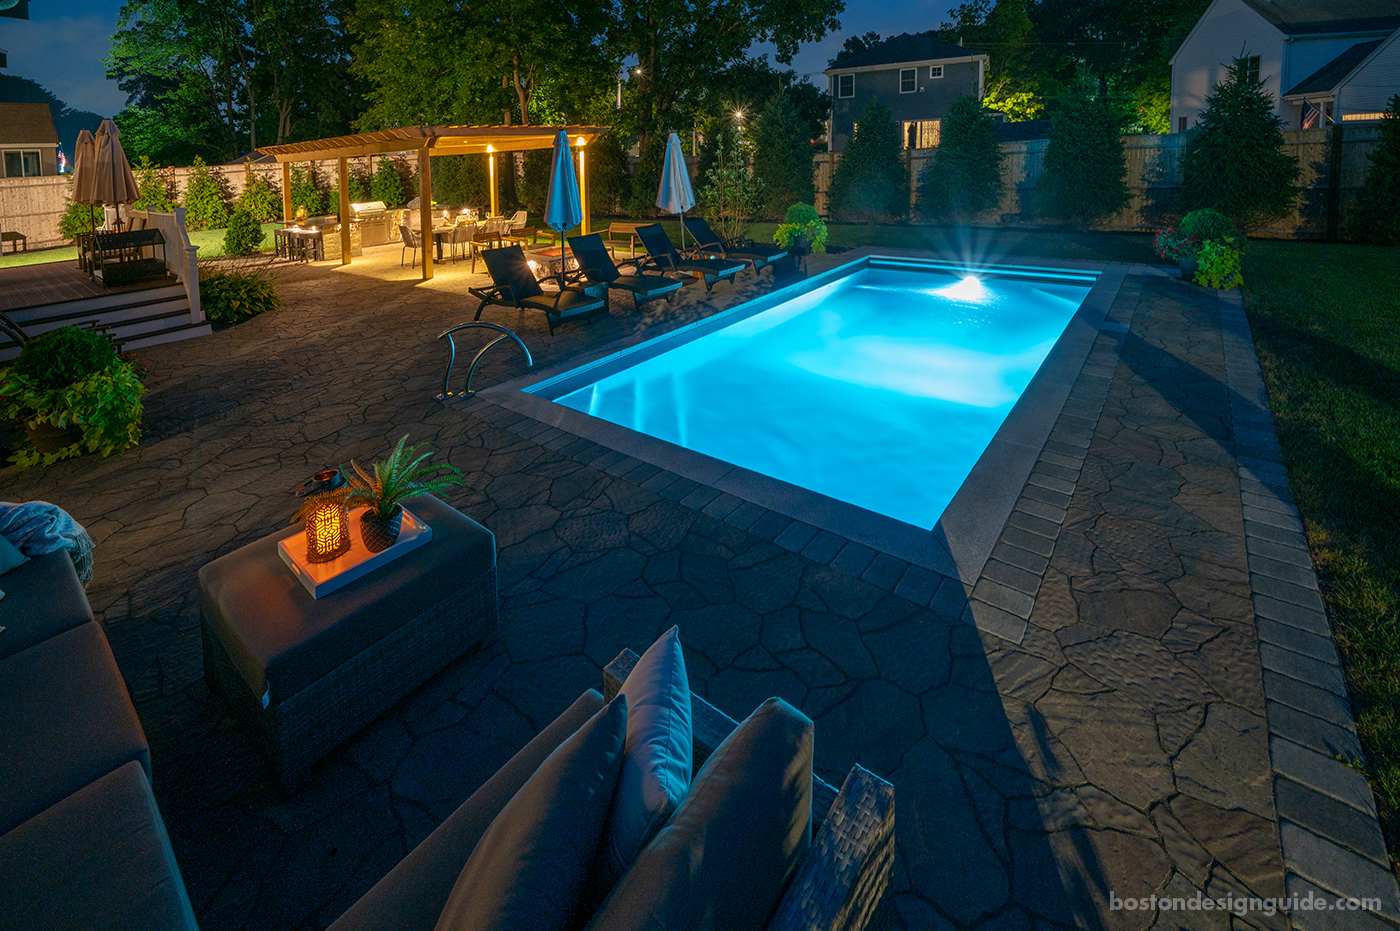 Residential pool terrace design at night by Land Design Associates